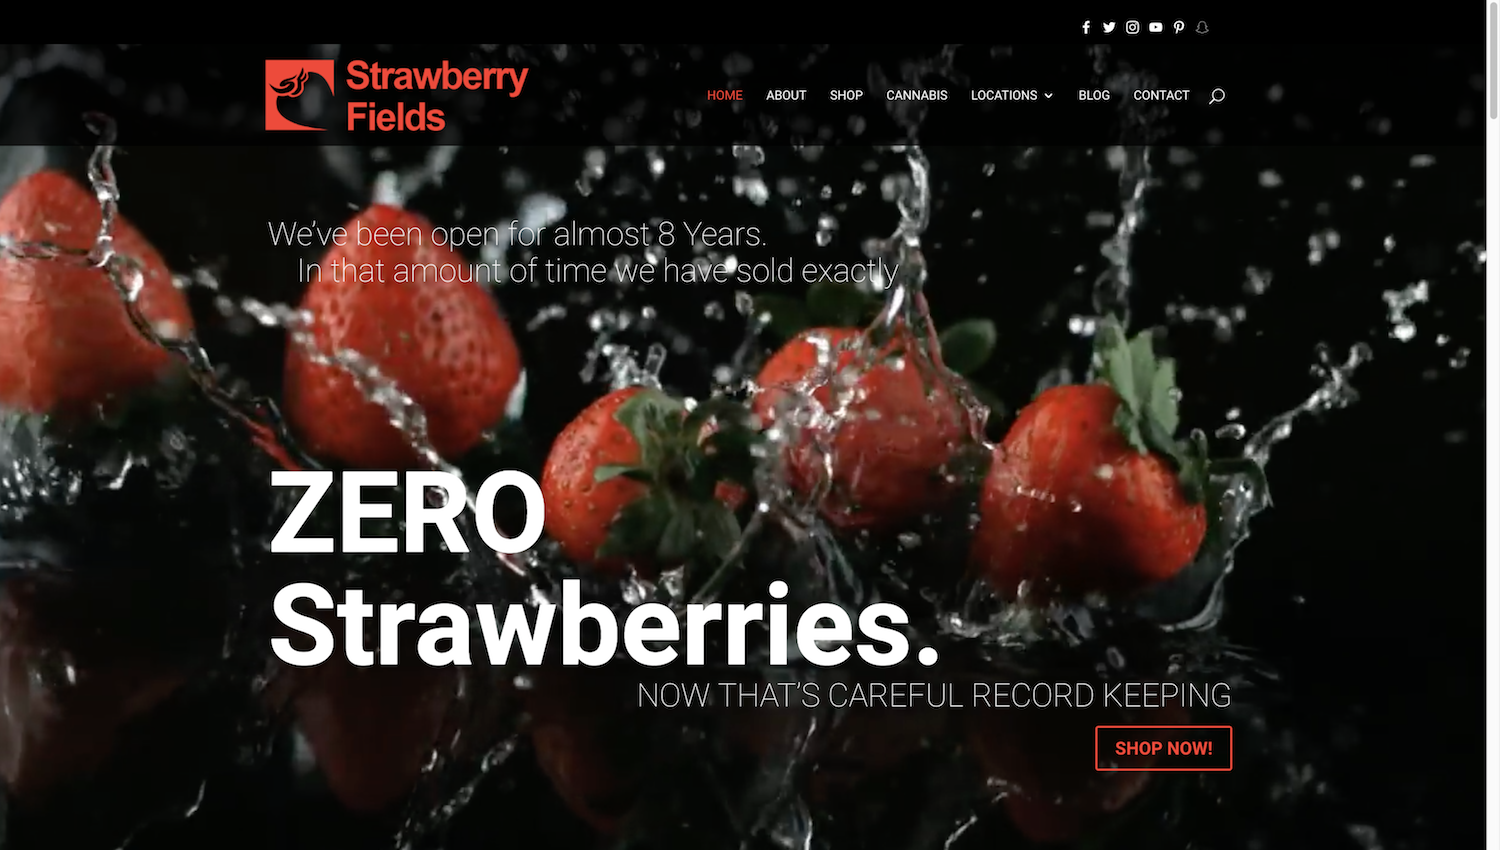 strawberry-fields-portfolio-1